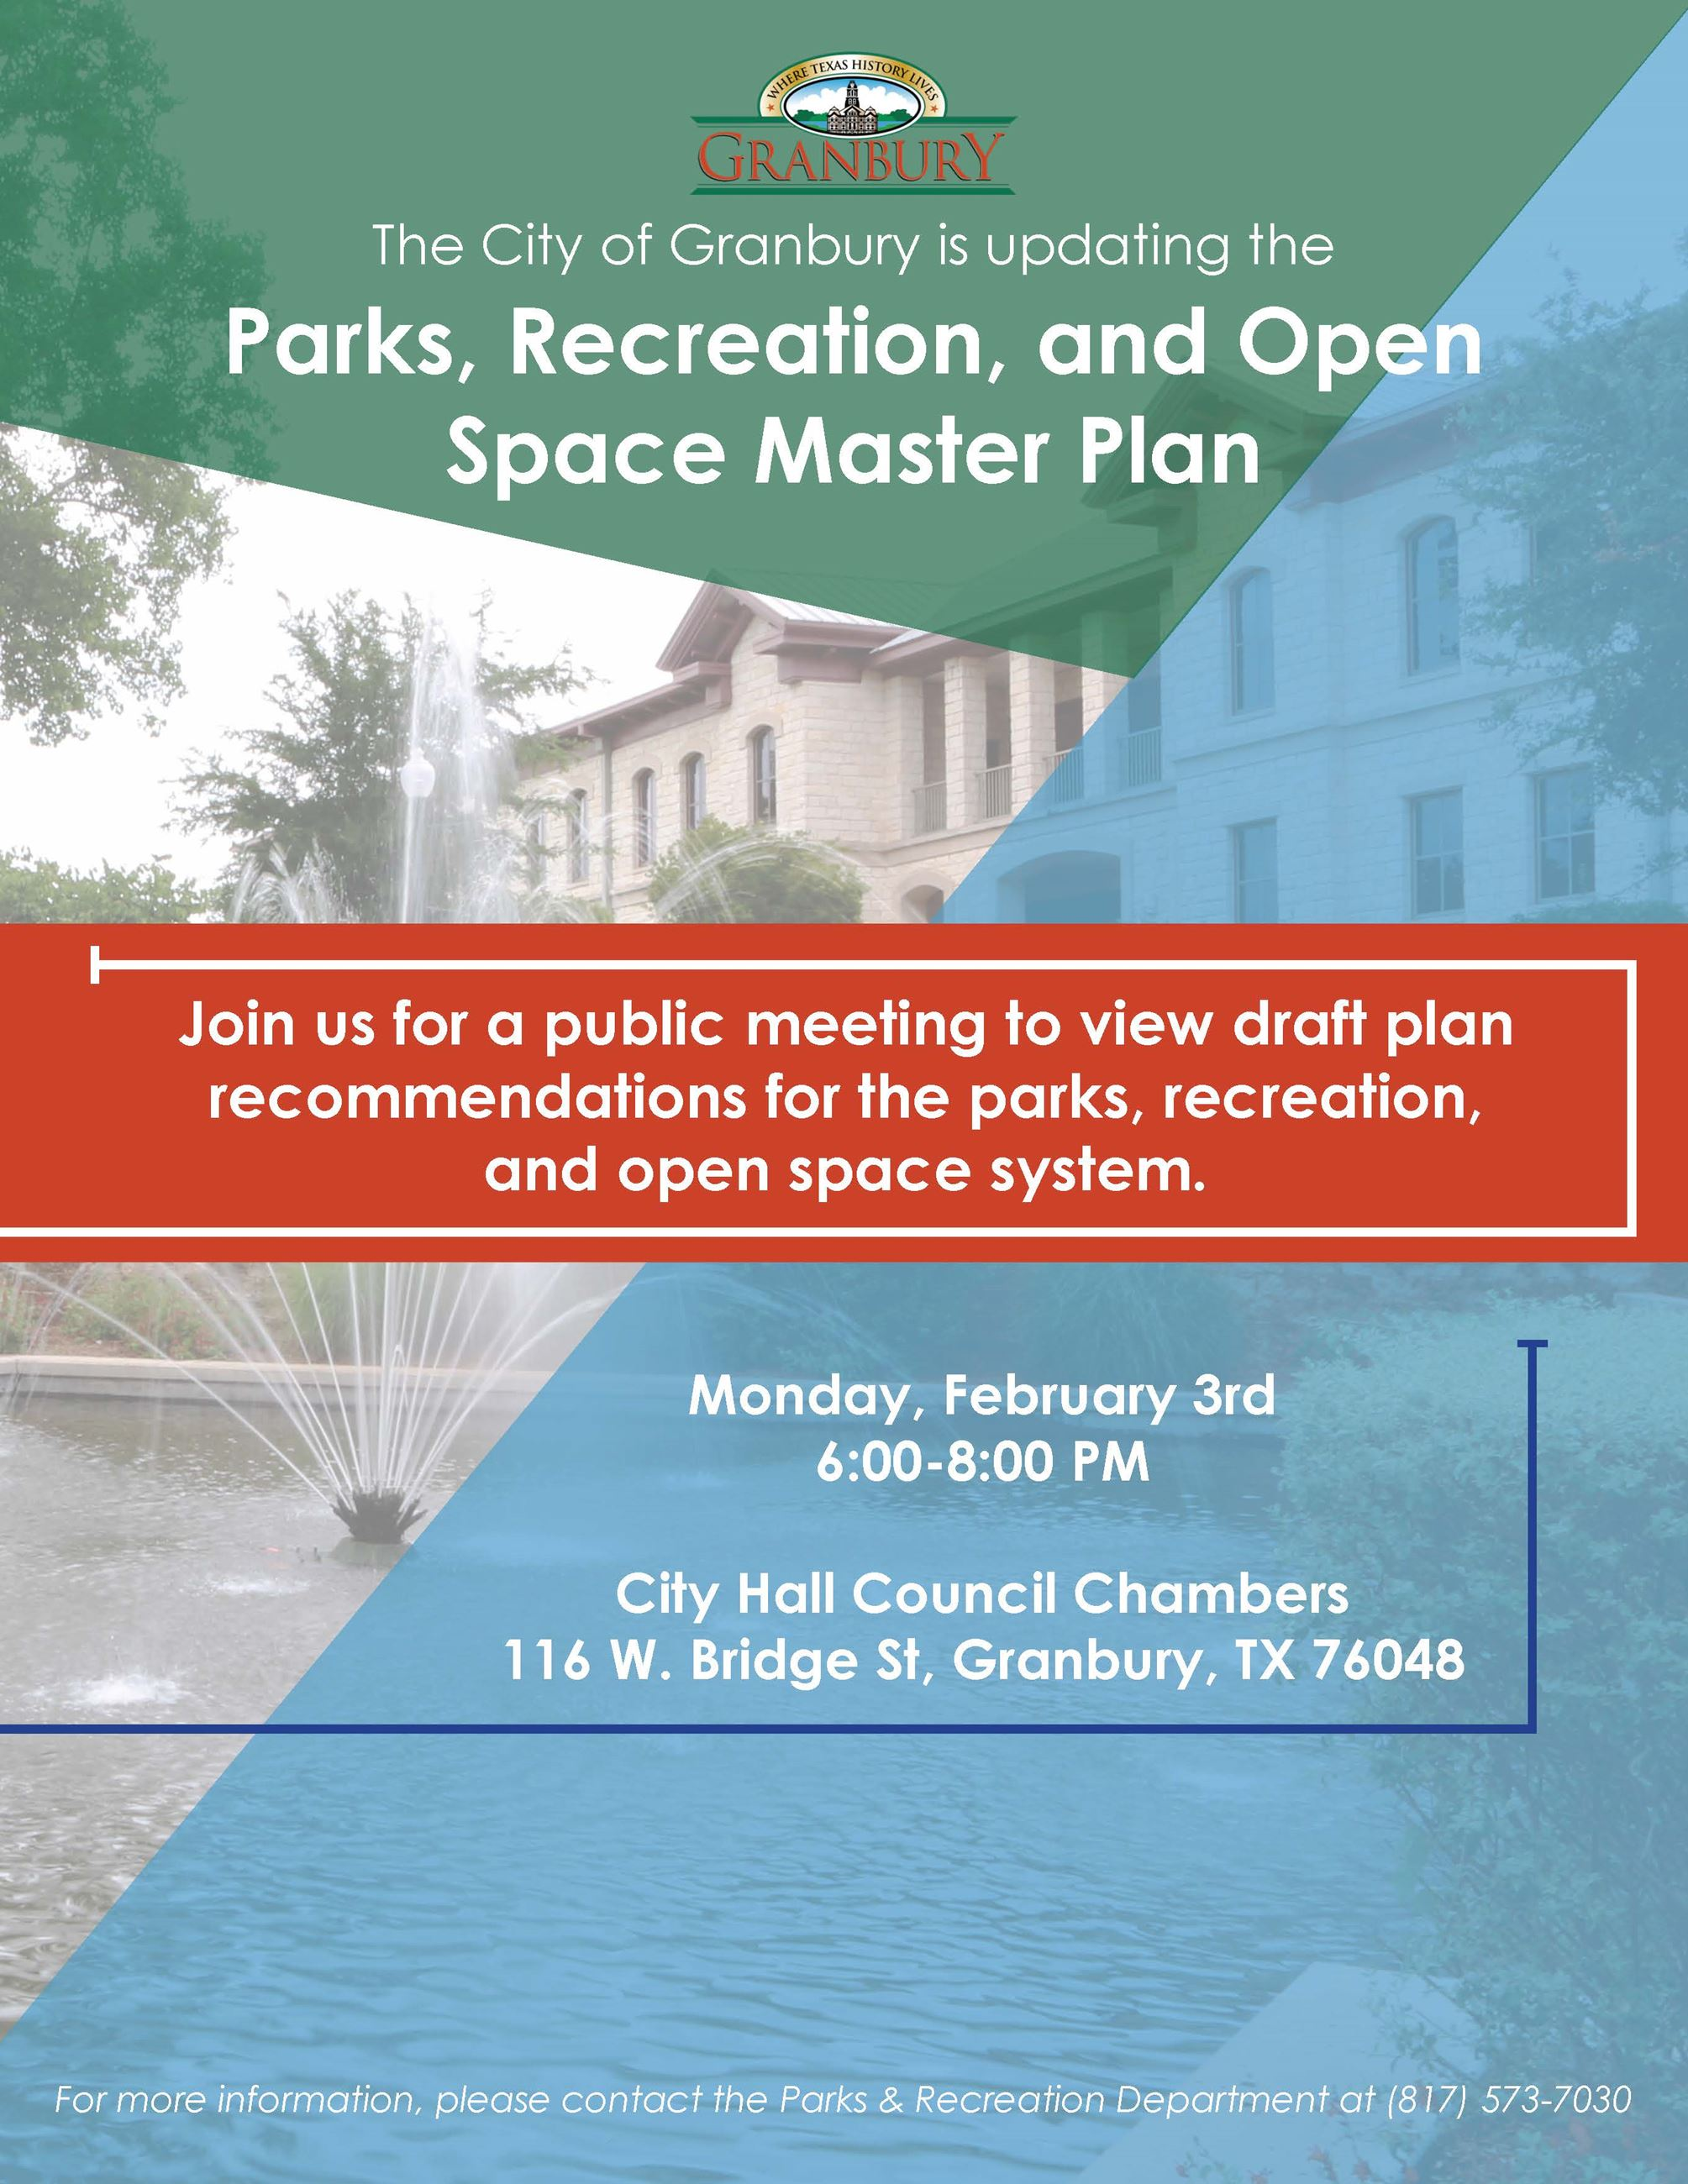 Public Meeting Flyer for February 3, 2020